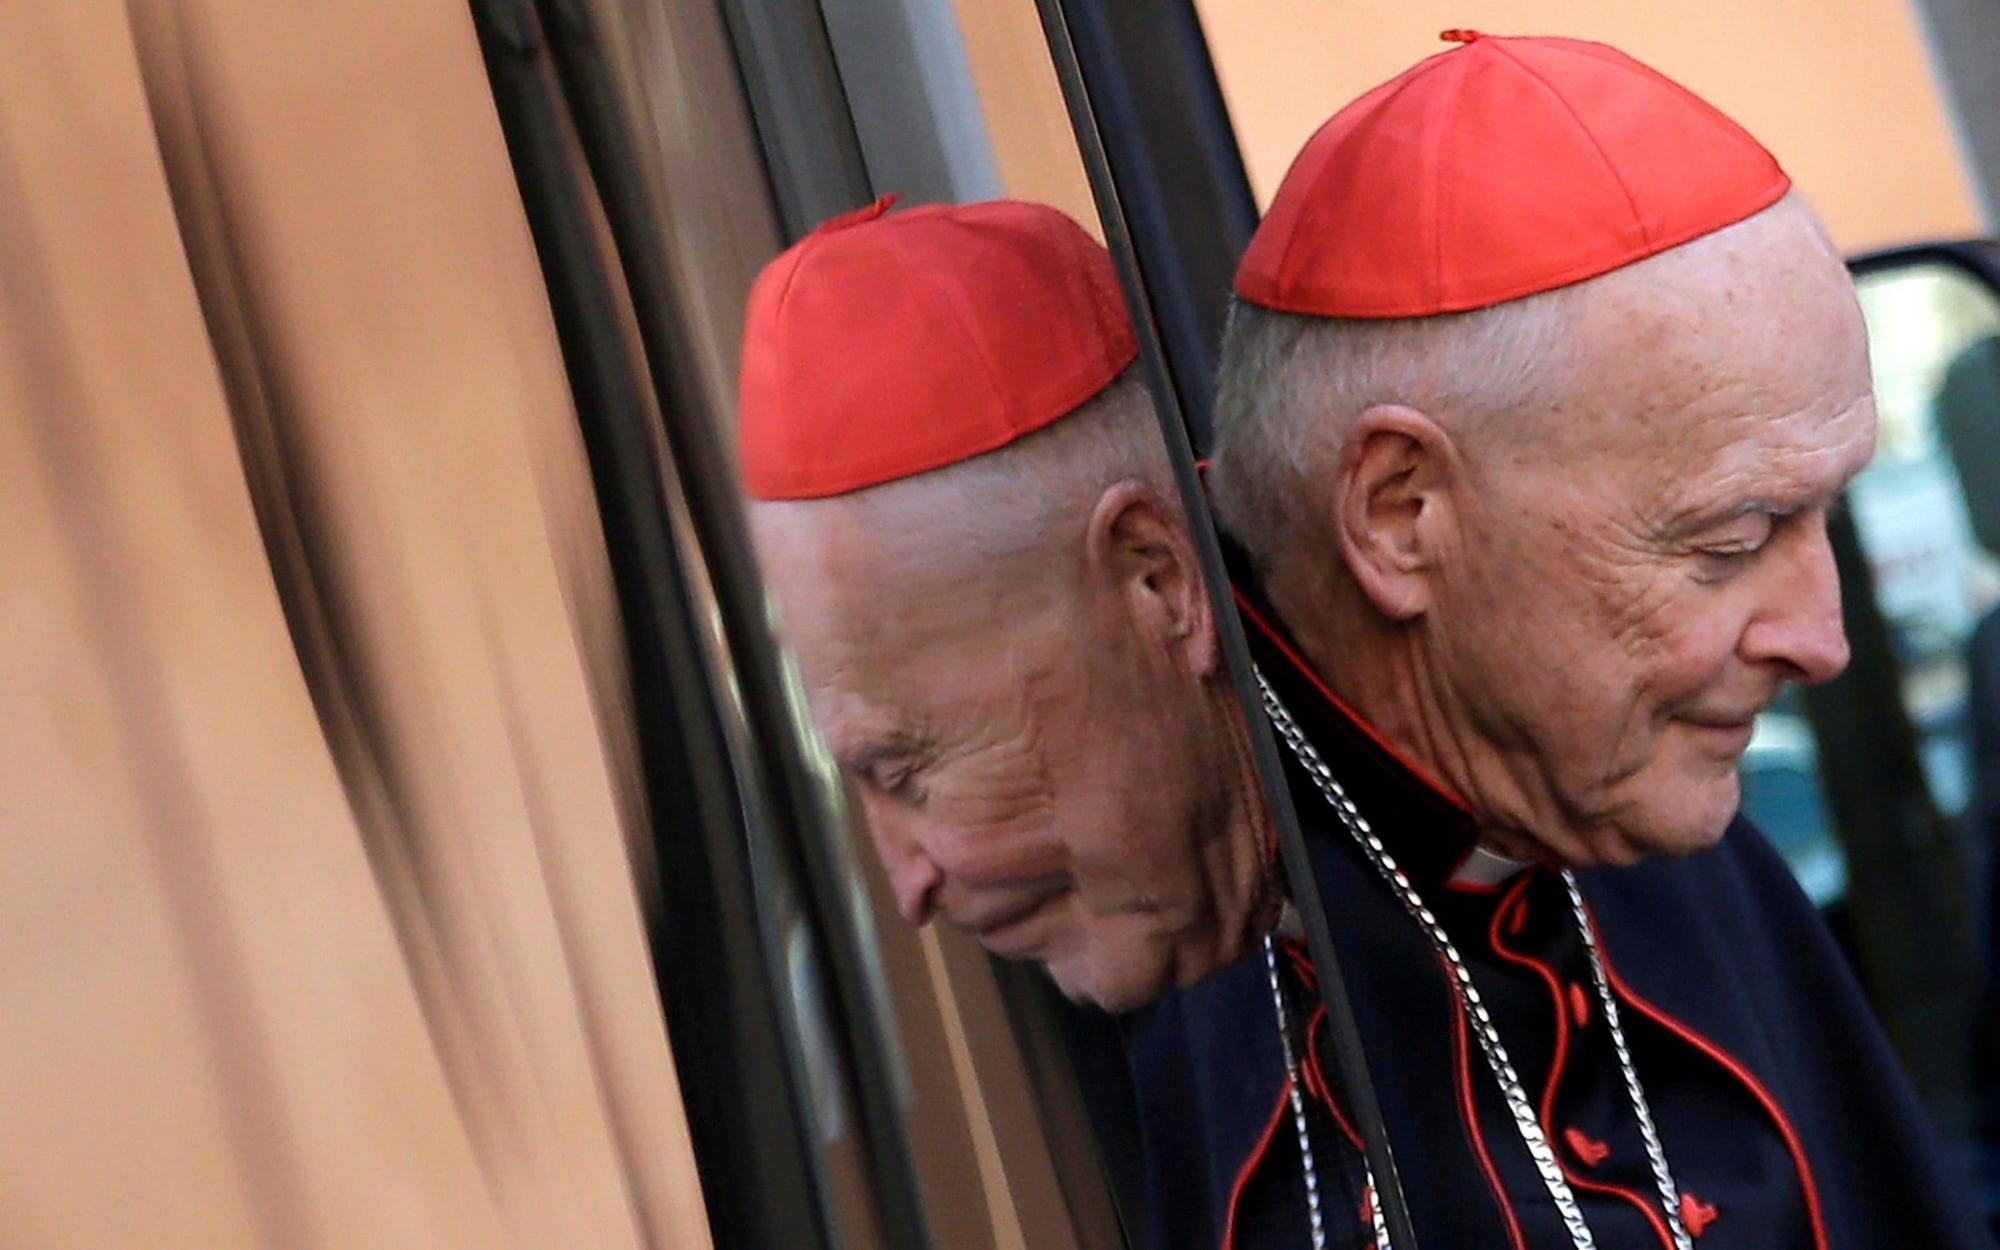 Vatican report into sex abuse by disgraced American cardinal reveals failings by popes and bishops